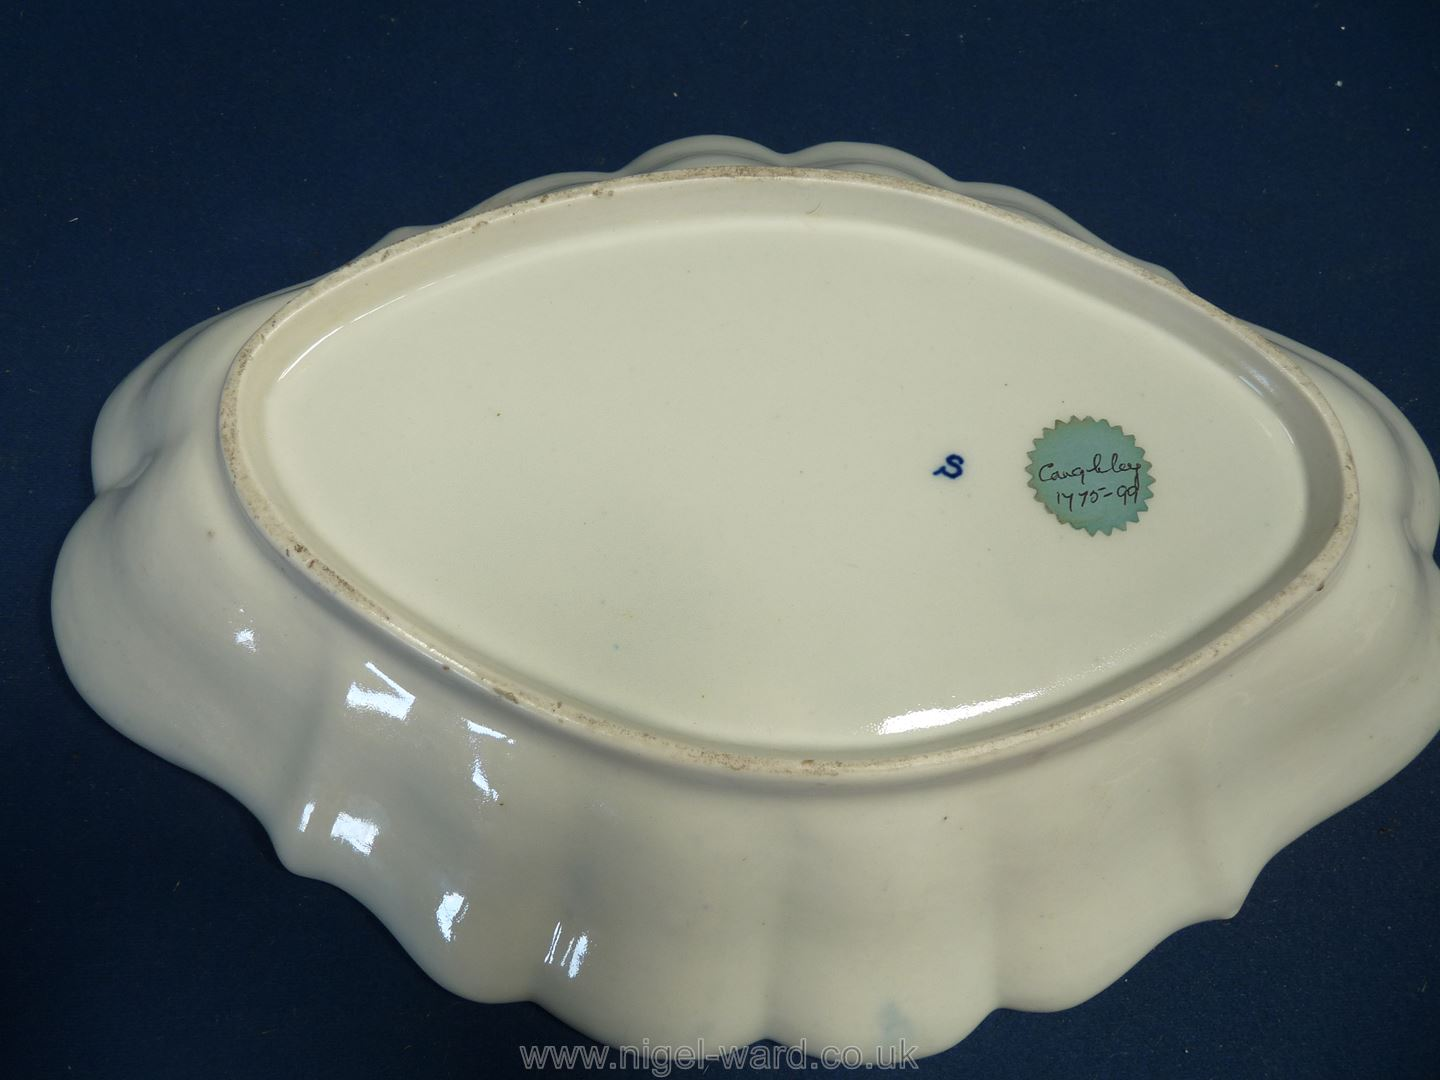 """A Caughley blue and white elongated diamond shaped Dish, 1770-99, 12 1/2"""" long x 8 3/4"""". - Image 2 of 2"""